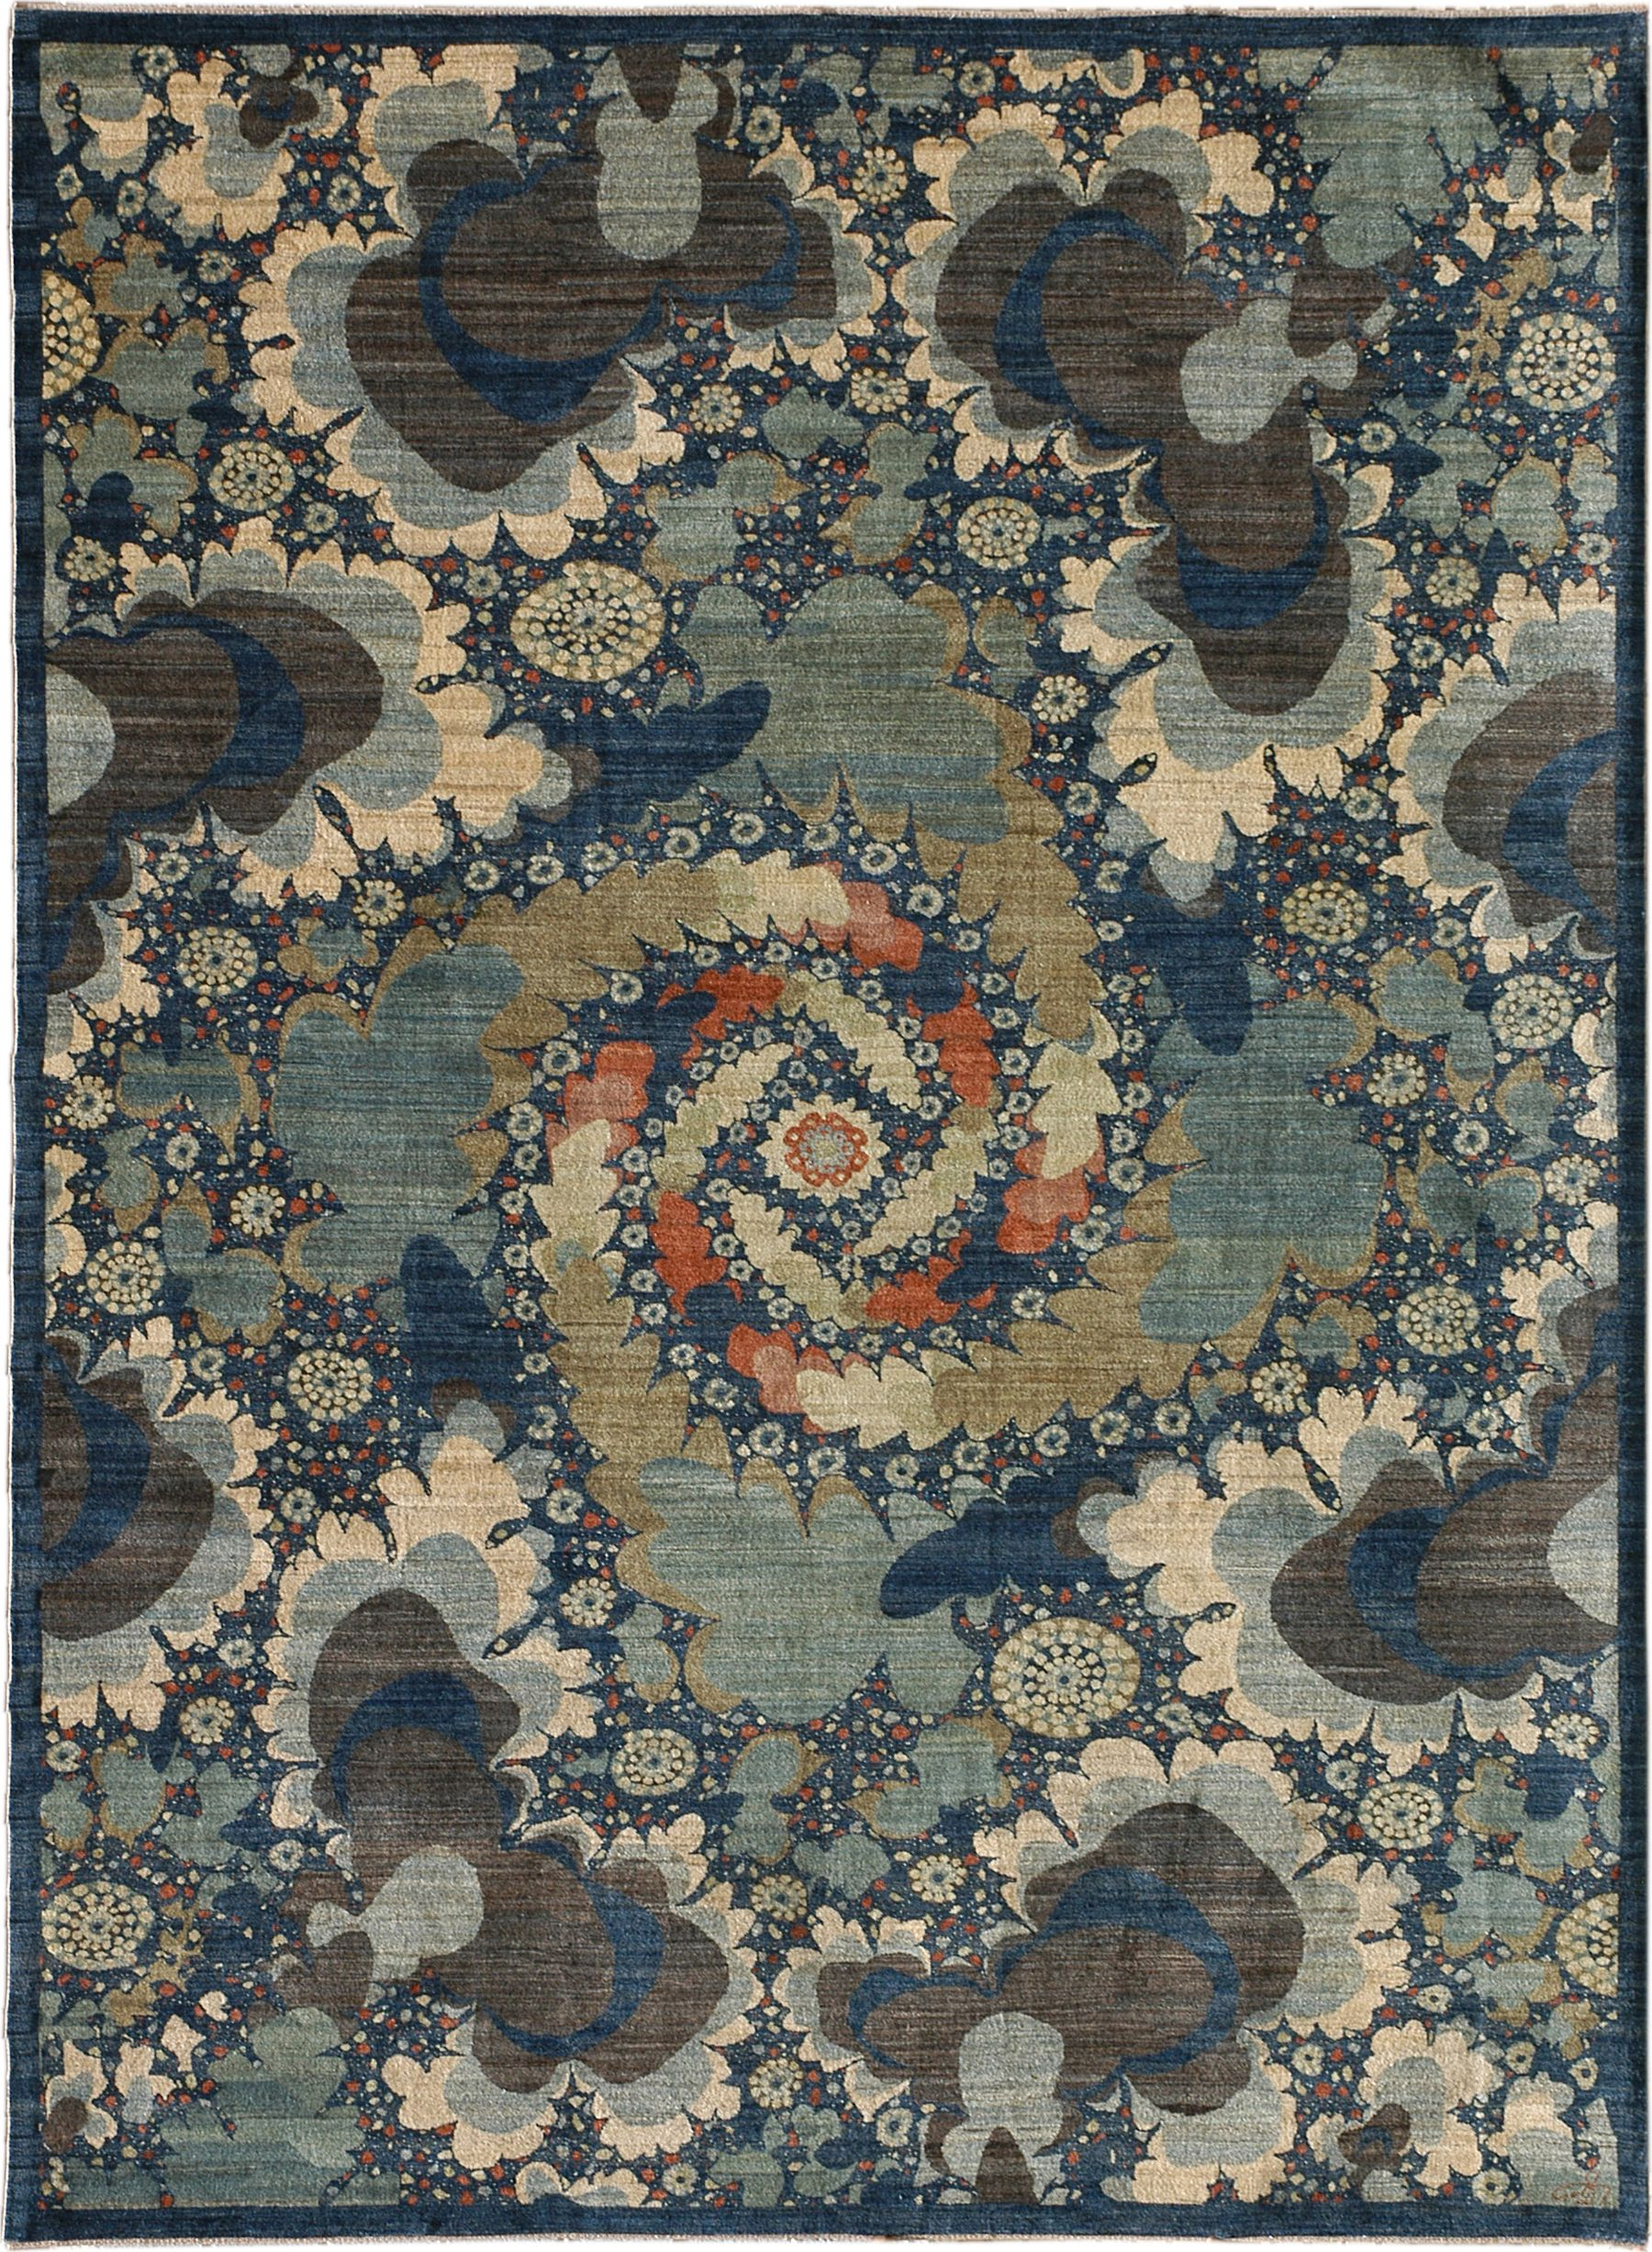 Nocturne 9 3 X 12 4 Contemporary Persian Rug From Orley Shabahang In 2020 Contemporary Persian Rugs Rugs On Carpet Antique Carpets